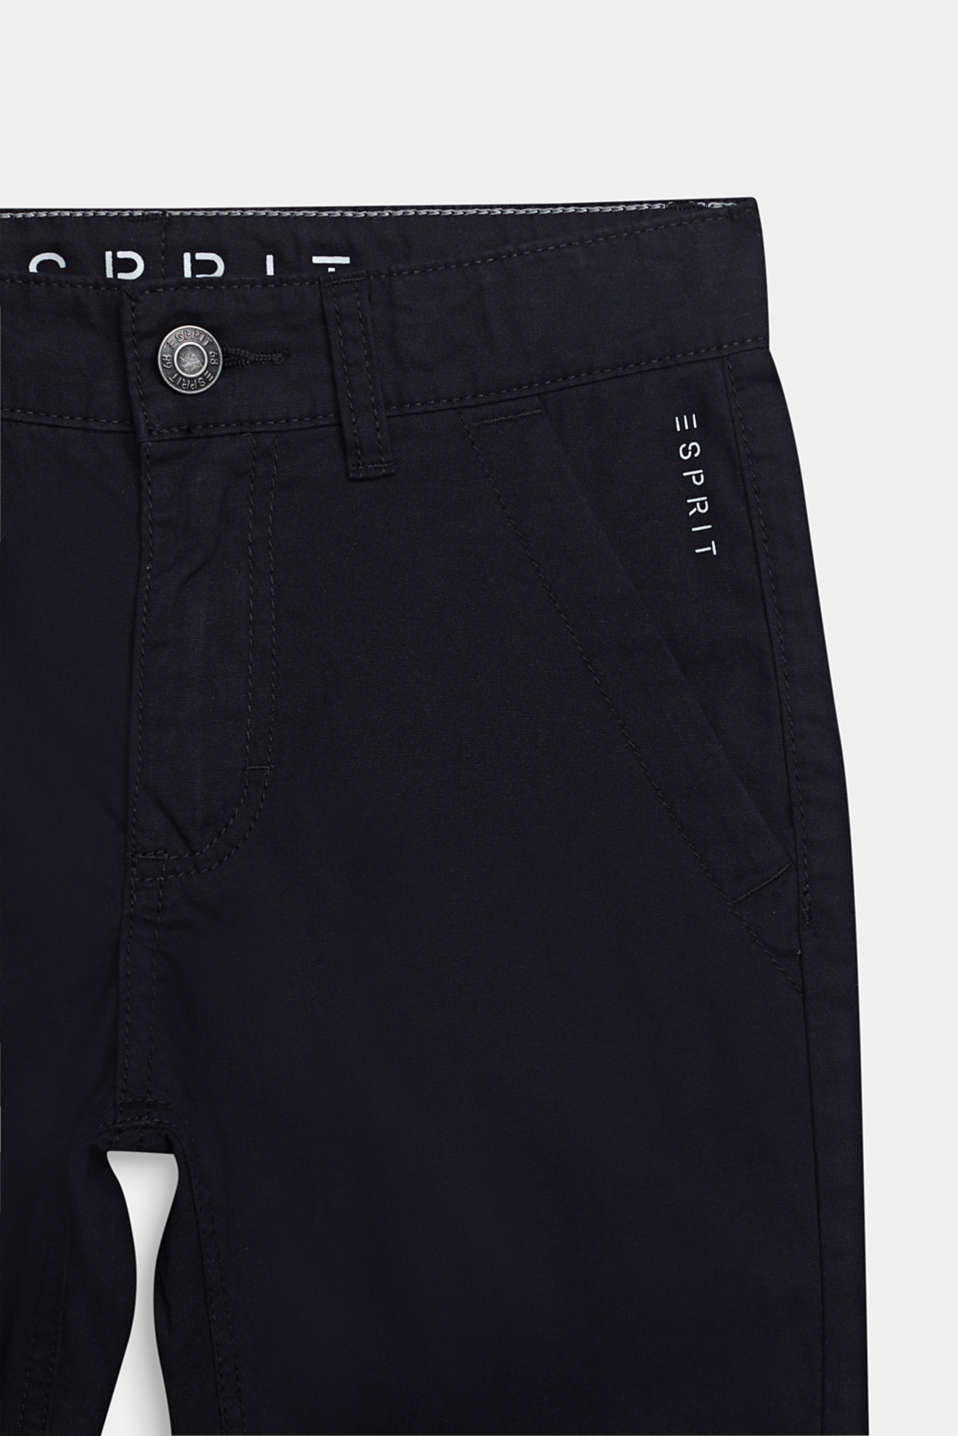 Bermuda shorts in 100% cotton, adjustable waistband, LCBLACK, detail image number 2